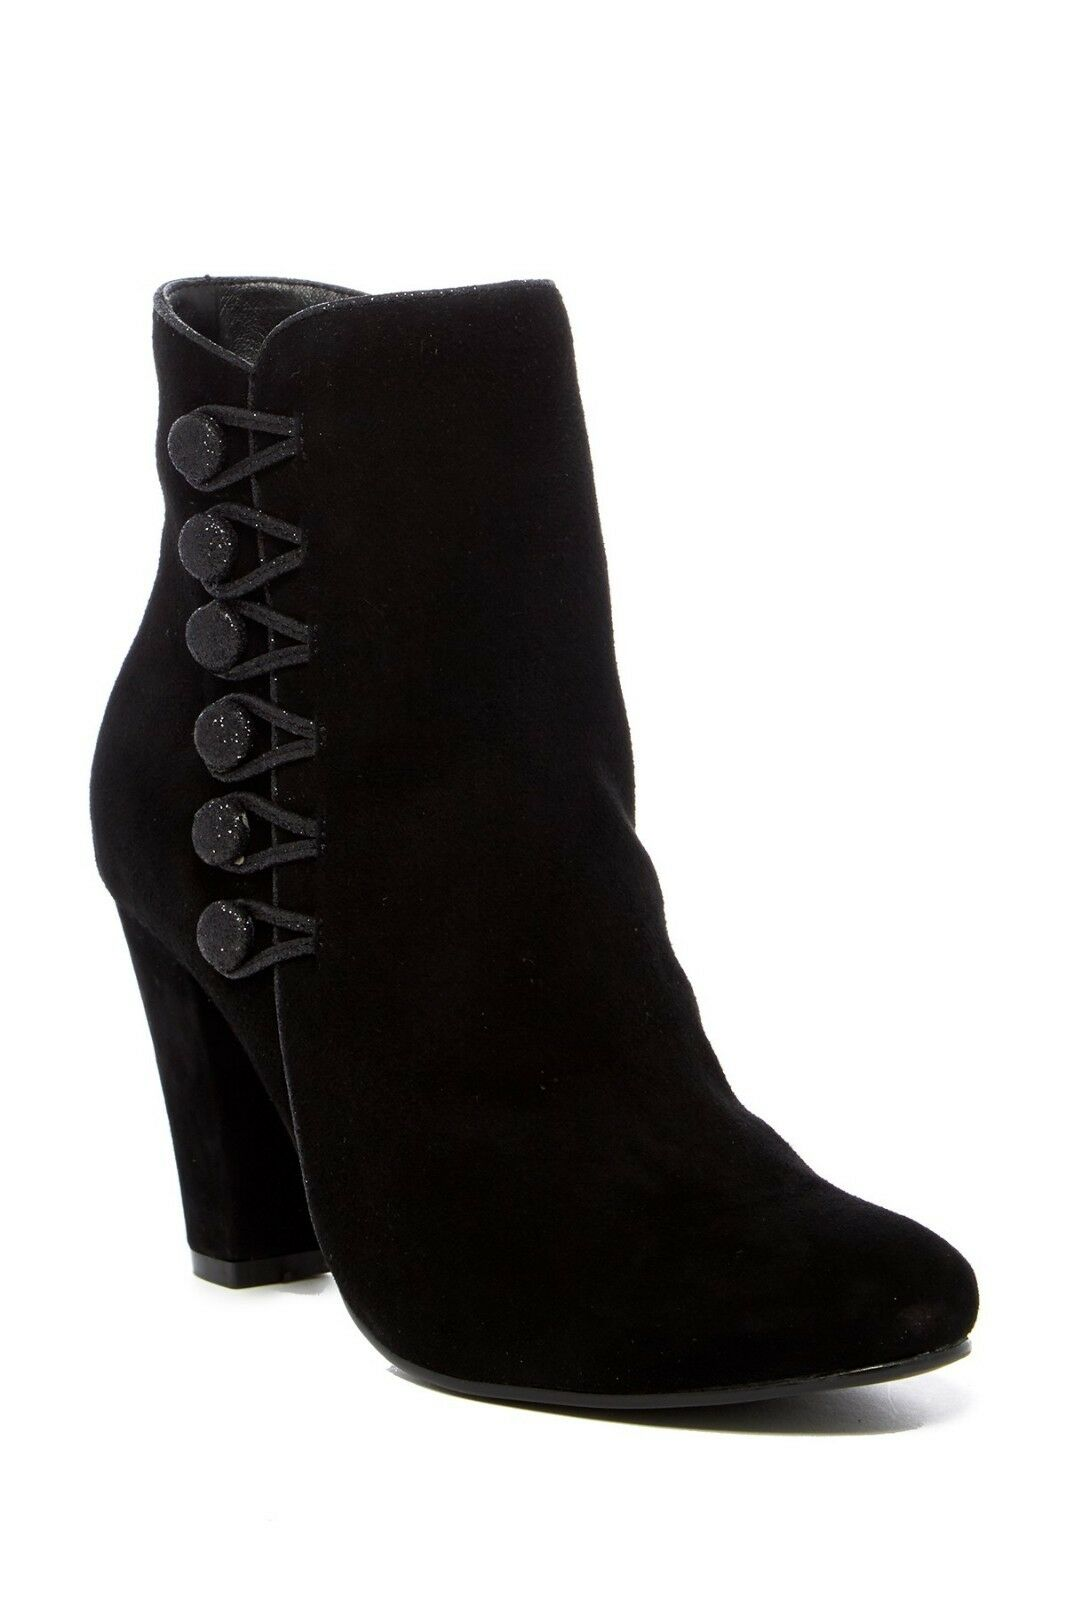 New Catherine Malandrino femmes Pepper Suede Button Heel Boho démarrageies bottes 7